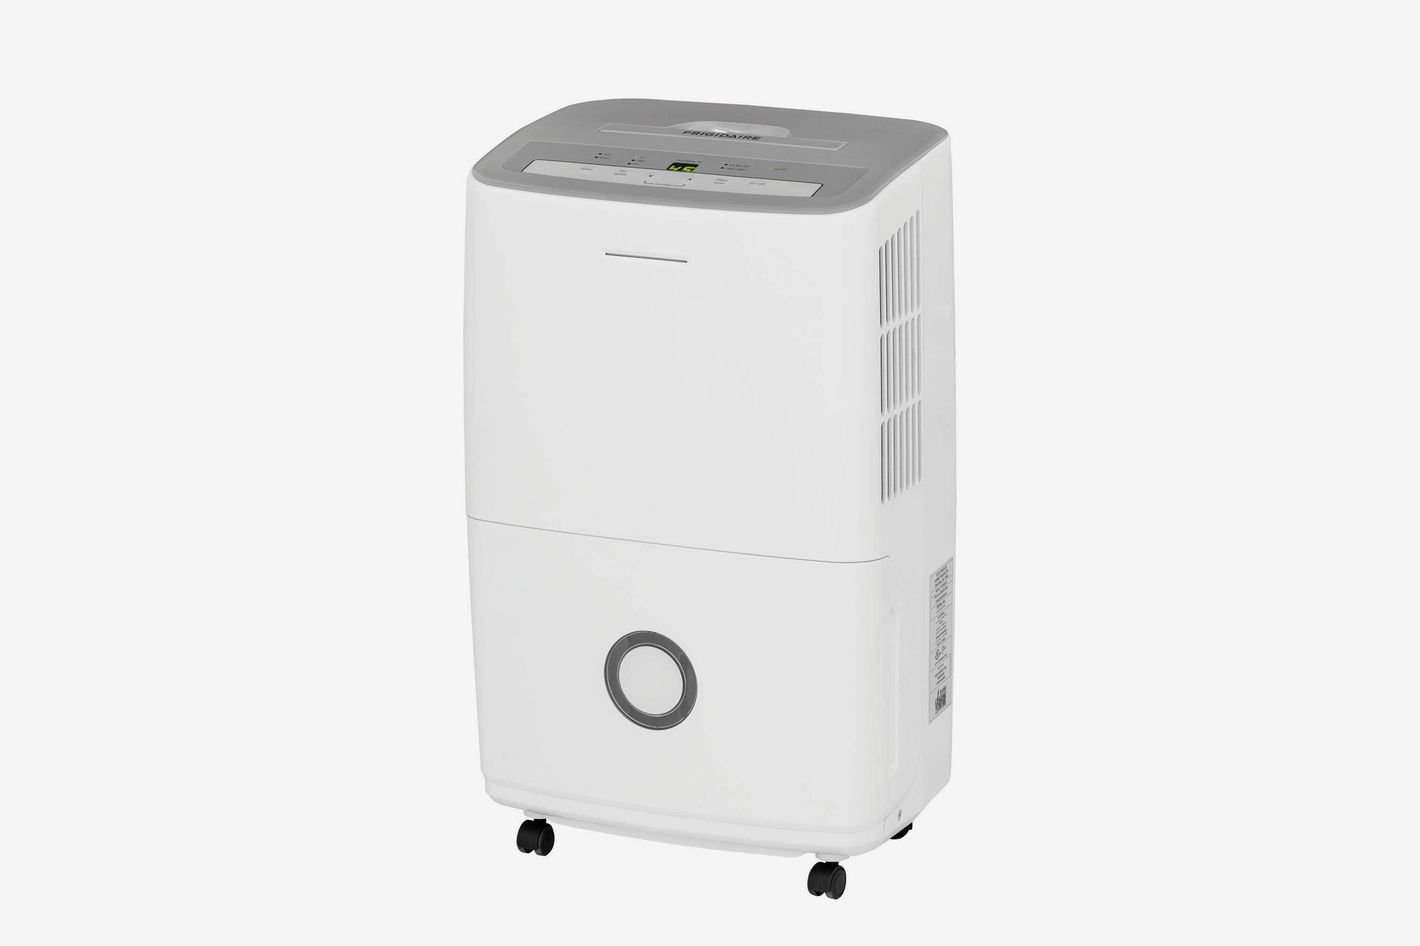 Frigidaire 30 Pint Dehumidifier With Effortless Humidity Control, White